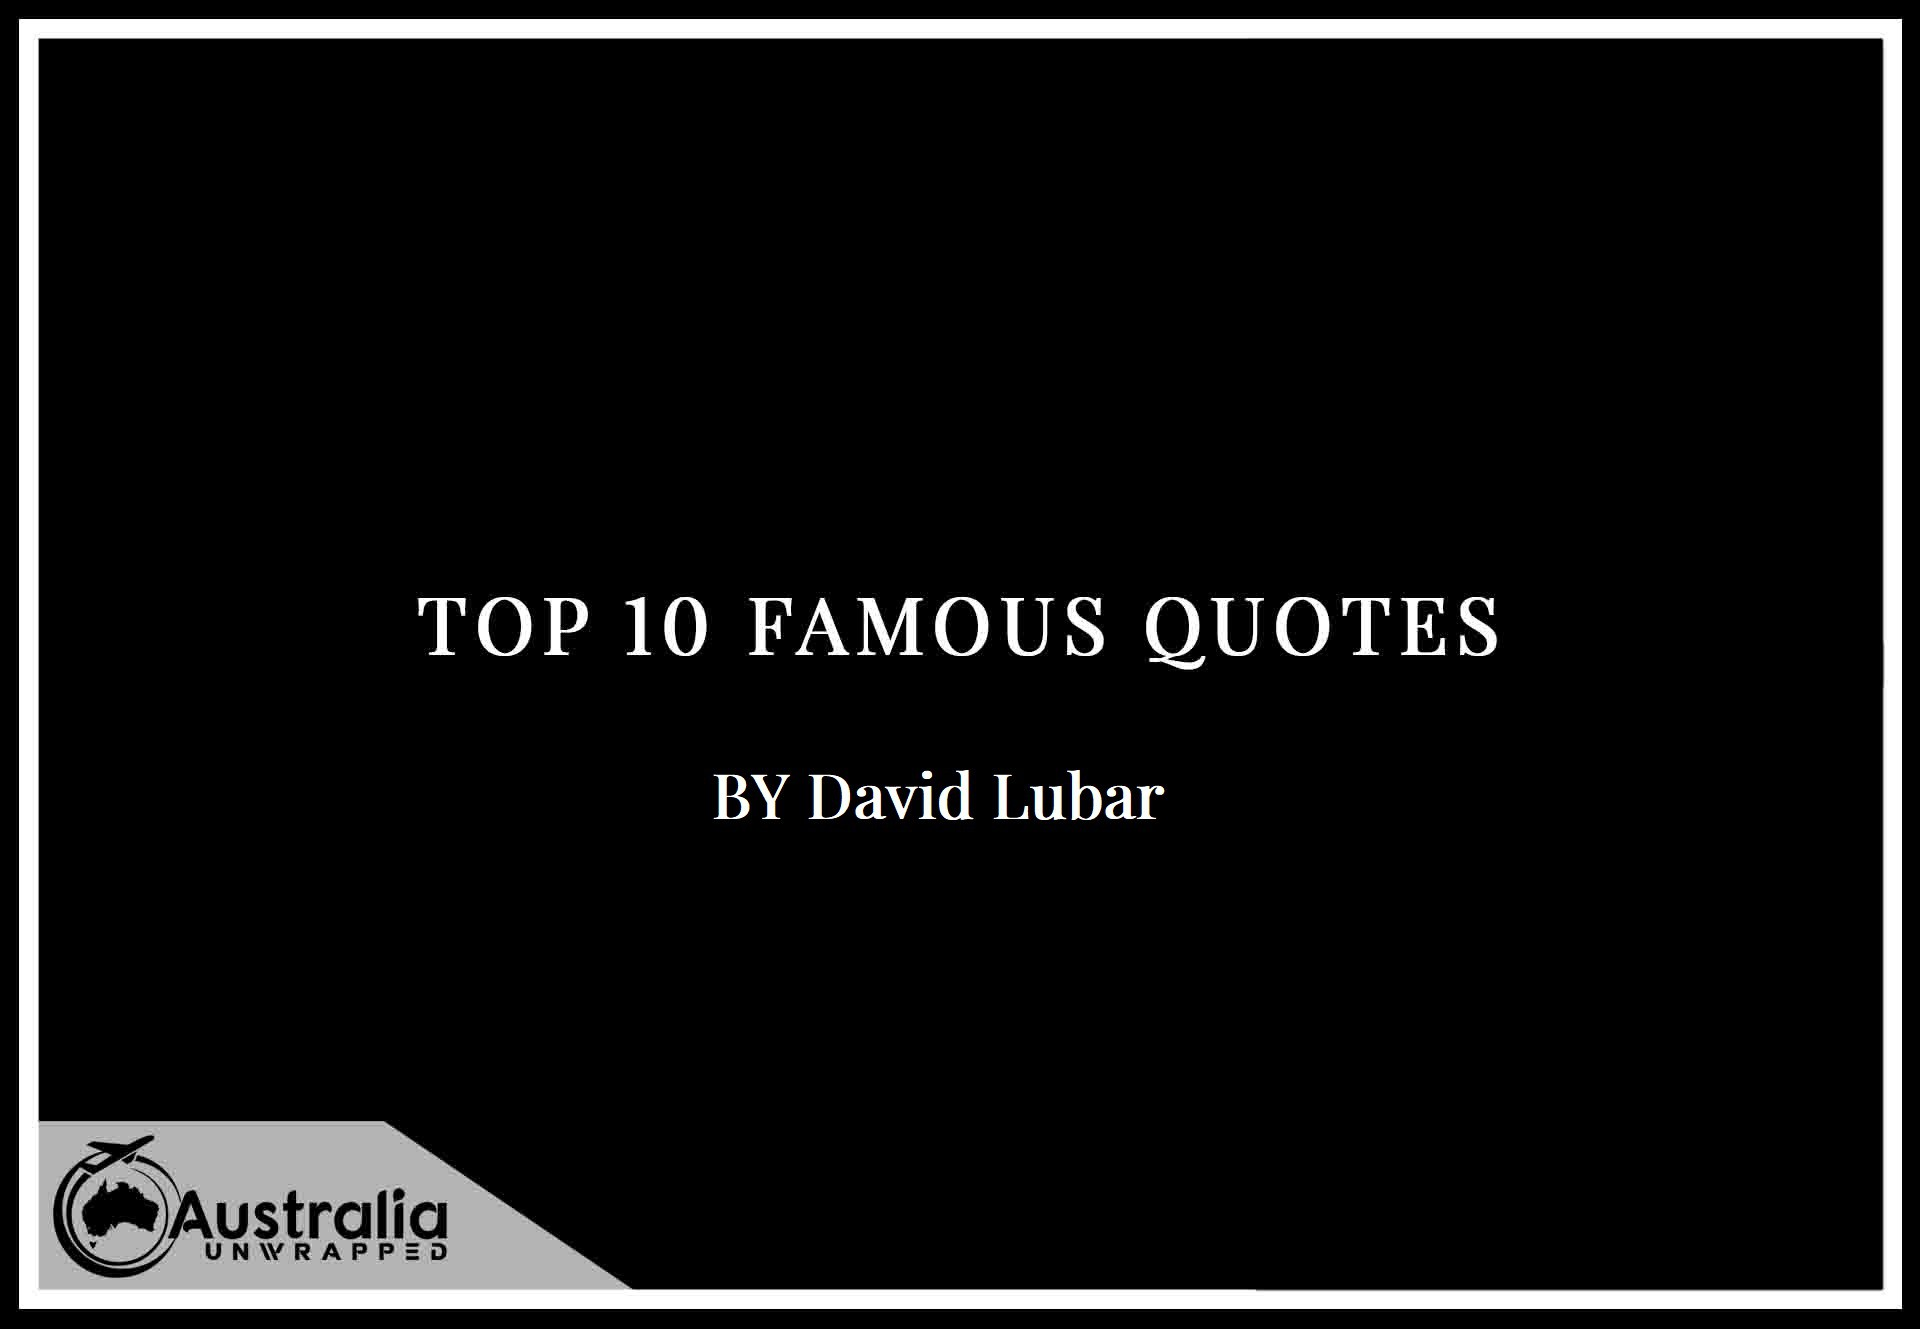 Top 10 Famous Quotes by Author David Lubar